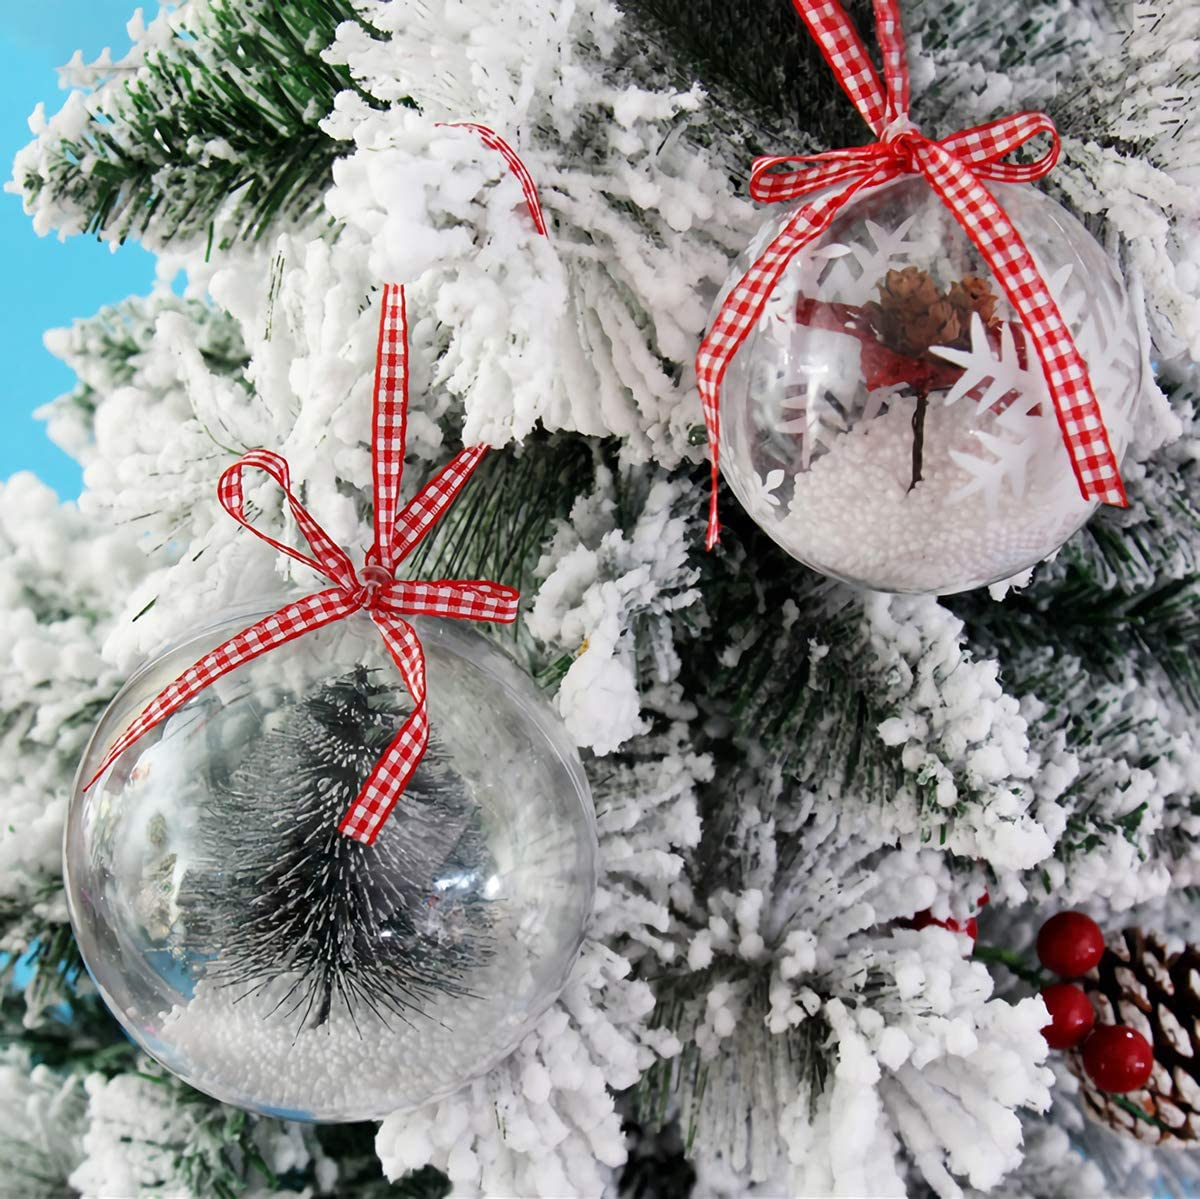 Home Decor Kingrol 20 Pack 4-Inch Clear Plastic Fillable Ornaments Ball Party for Christmas Wedding